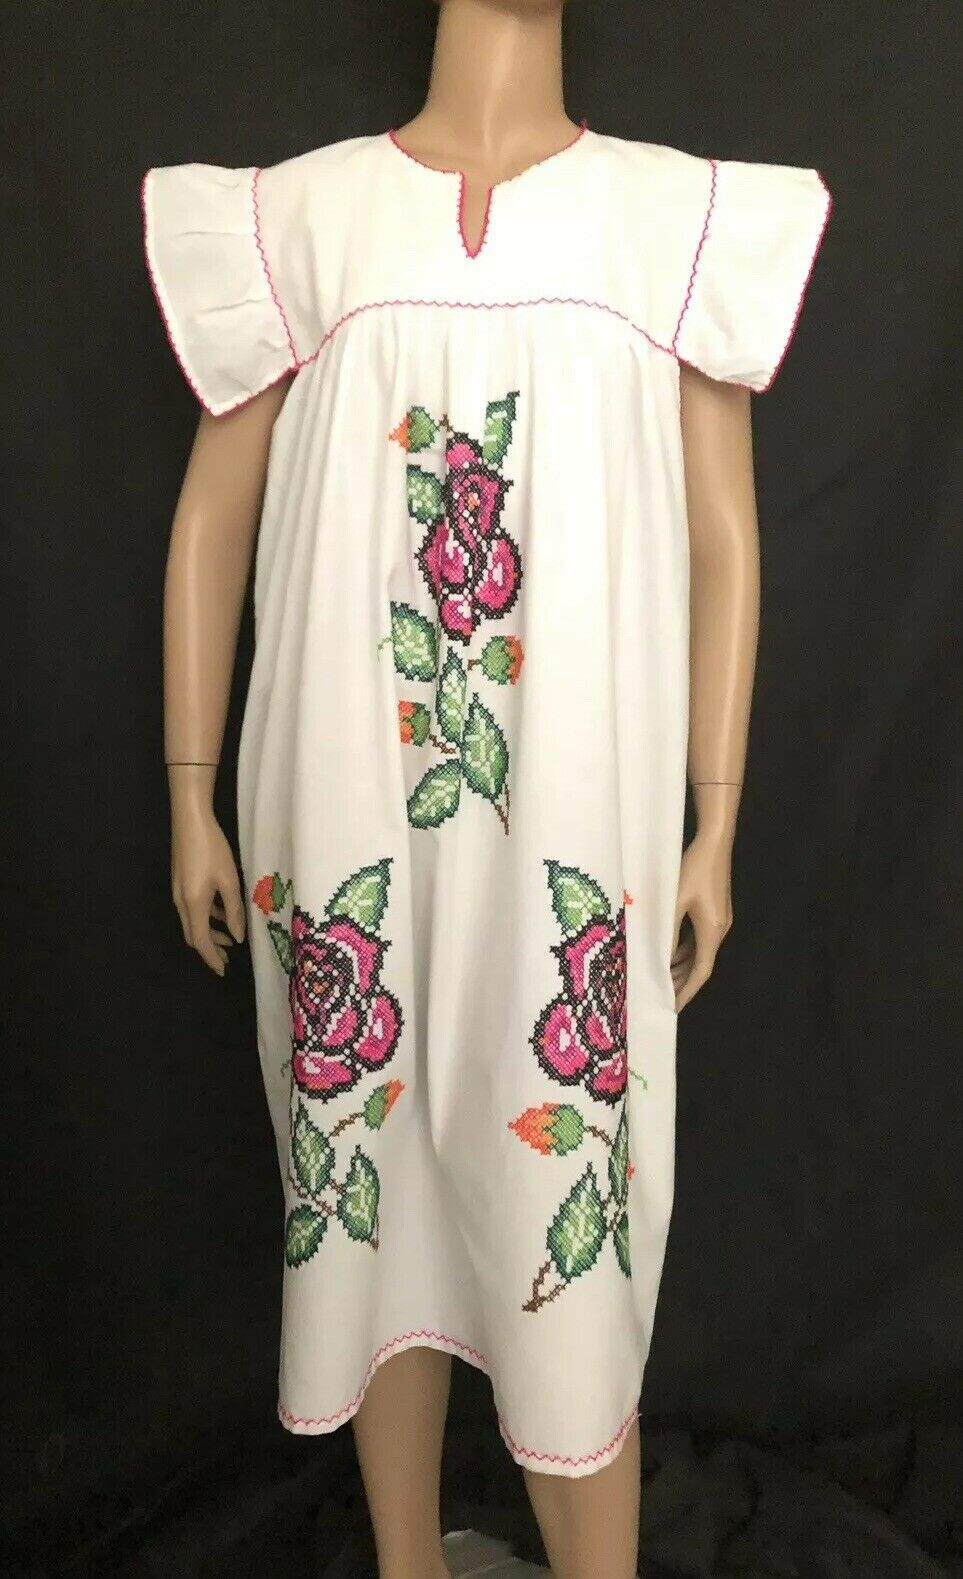 Vintage Hippie Ethnic Boho Mexican Cross Stitch Embroidery Tunic Festival Dress